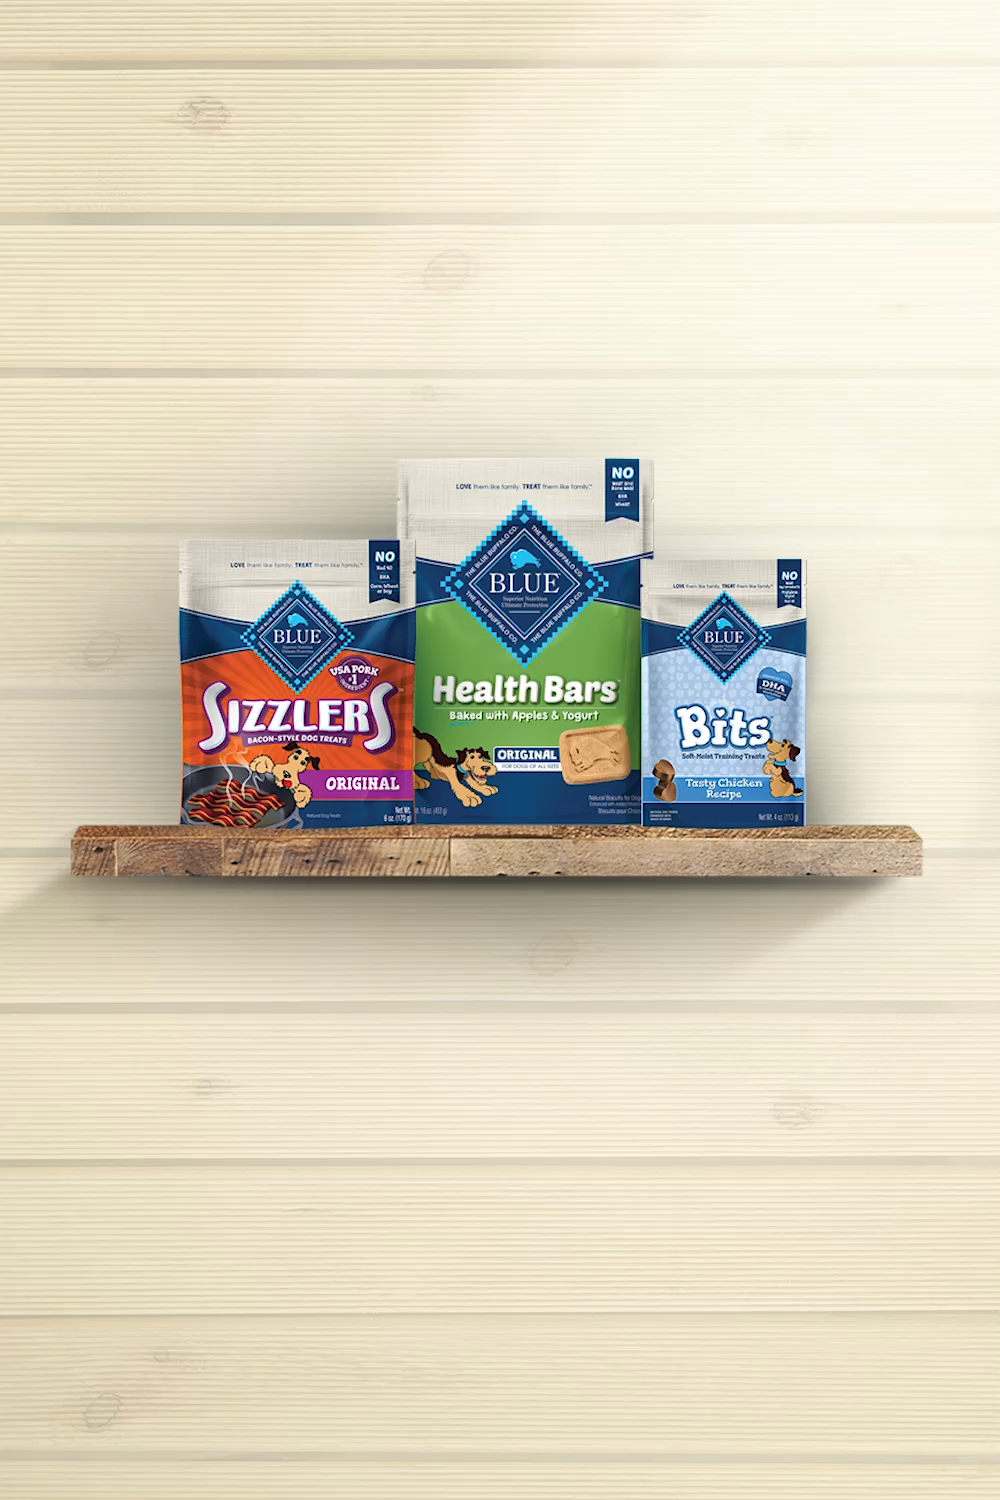 Nothing beats a Blue Buffalo tasty treat for your four-legged family members. Discover a range of nutritious and mouthwatering treats of oven-baked Health Bars, moist Blue Bits and Natural Bacon-style Sizzlers.